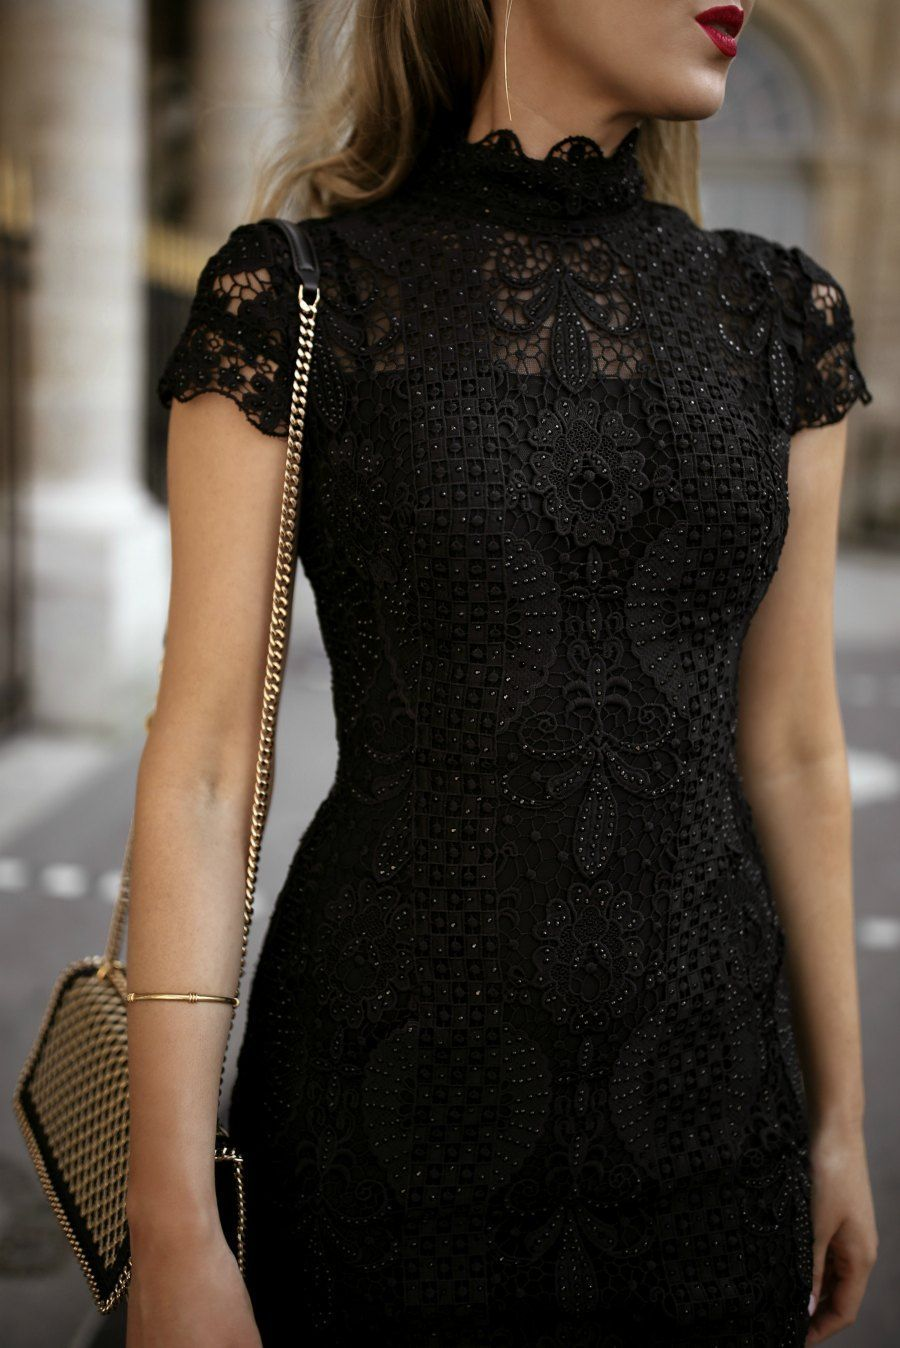 30 Dresses In 30 Days Day 11 What To Wear To A Cocktail Attire Wedding Black Lace Short Sleeve Mini Beautiful Black Dresses Cocktail Attire Classy Dress [ 1348 x 900 Pixel ]